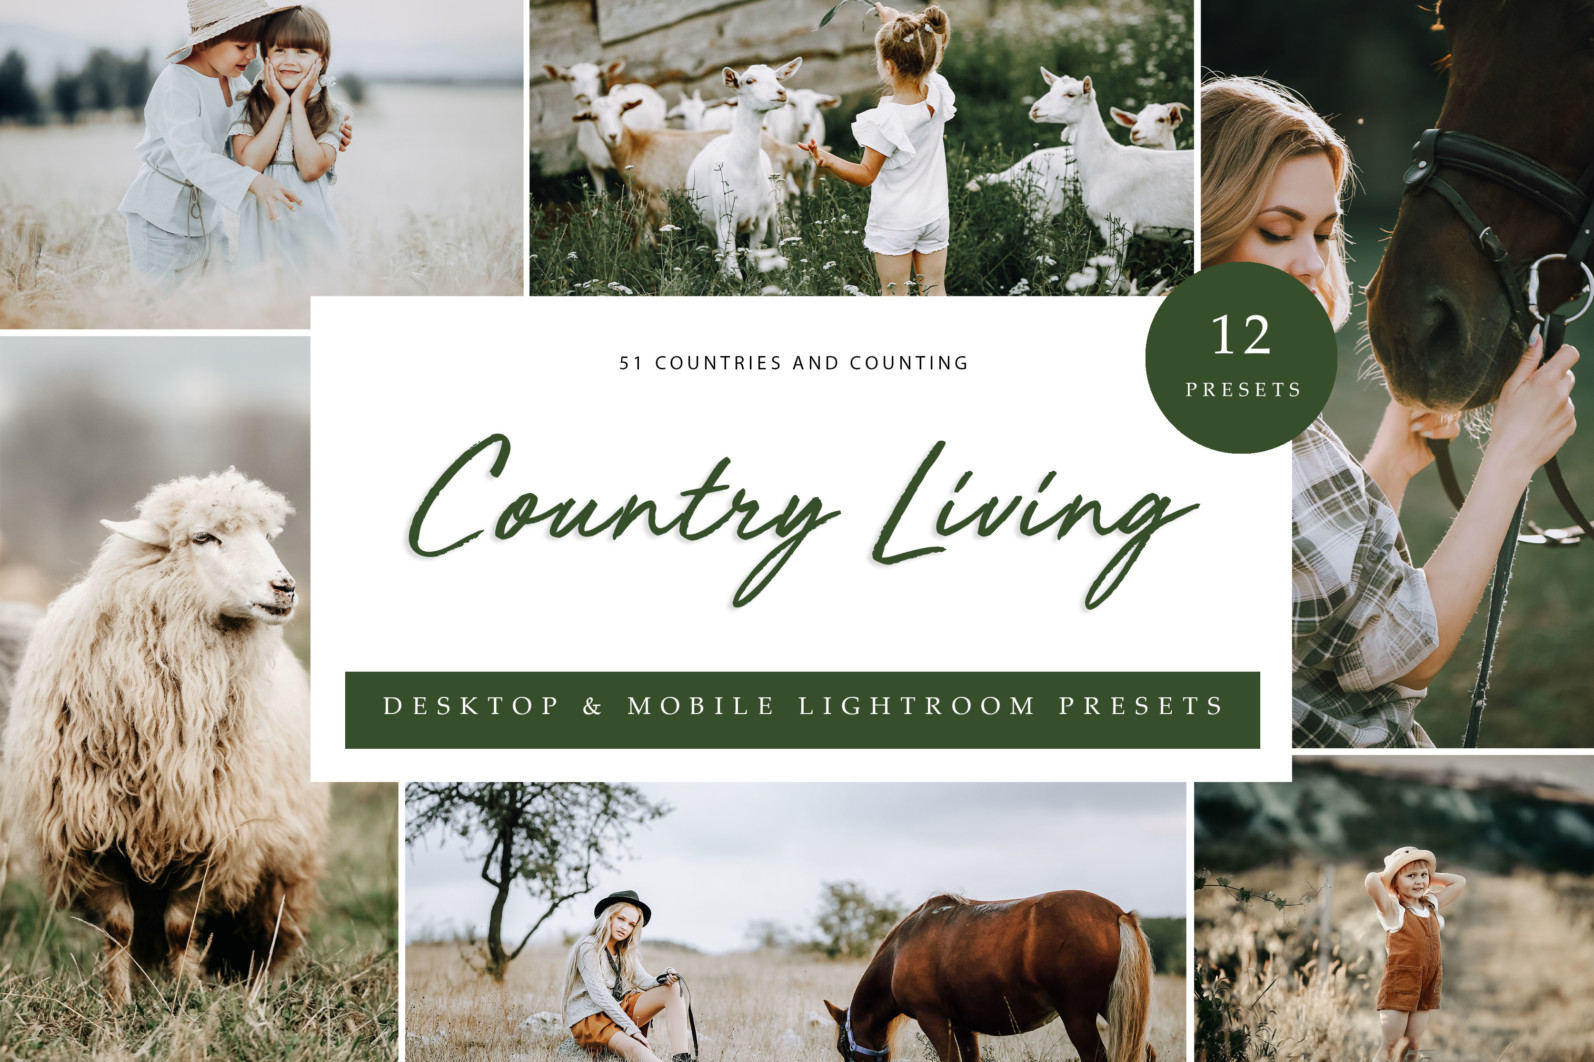 12 x Lightroom Presets, Country Living Presets, Portrait Presets, Green Shades Presets, Outdoor - Country Living LR scaled -